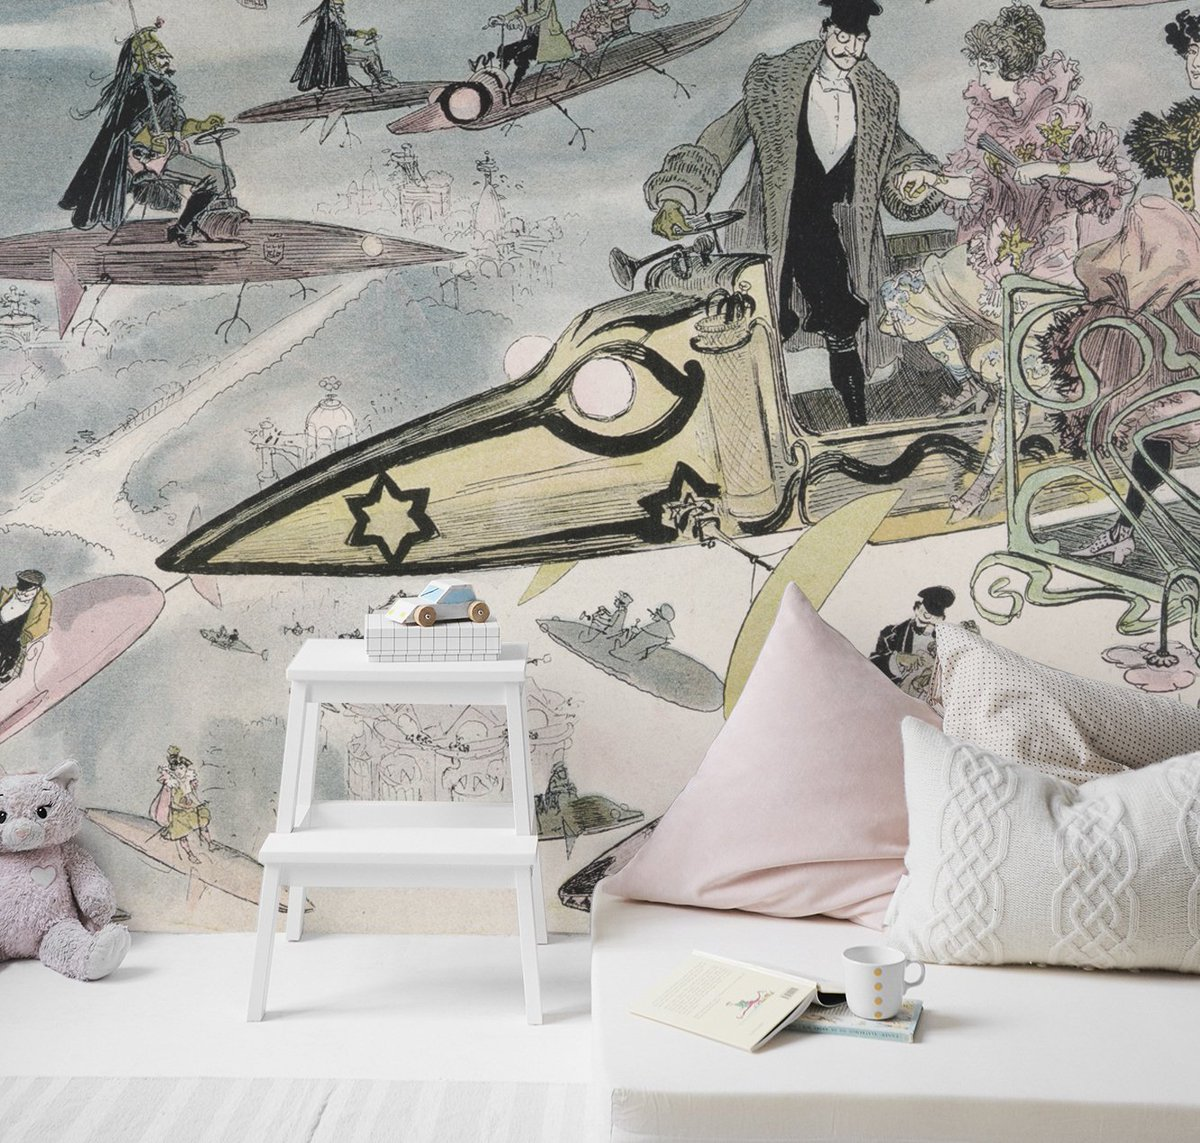 Eazywallz eazywallz twitter read here httpseazywallzblogswall mural ideas6 ways to upgrade your home decor with vintage wall murals picitterg3fw7dokdd amipublicfo Gallery